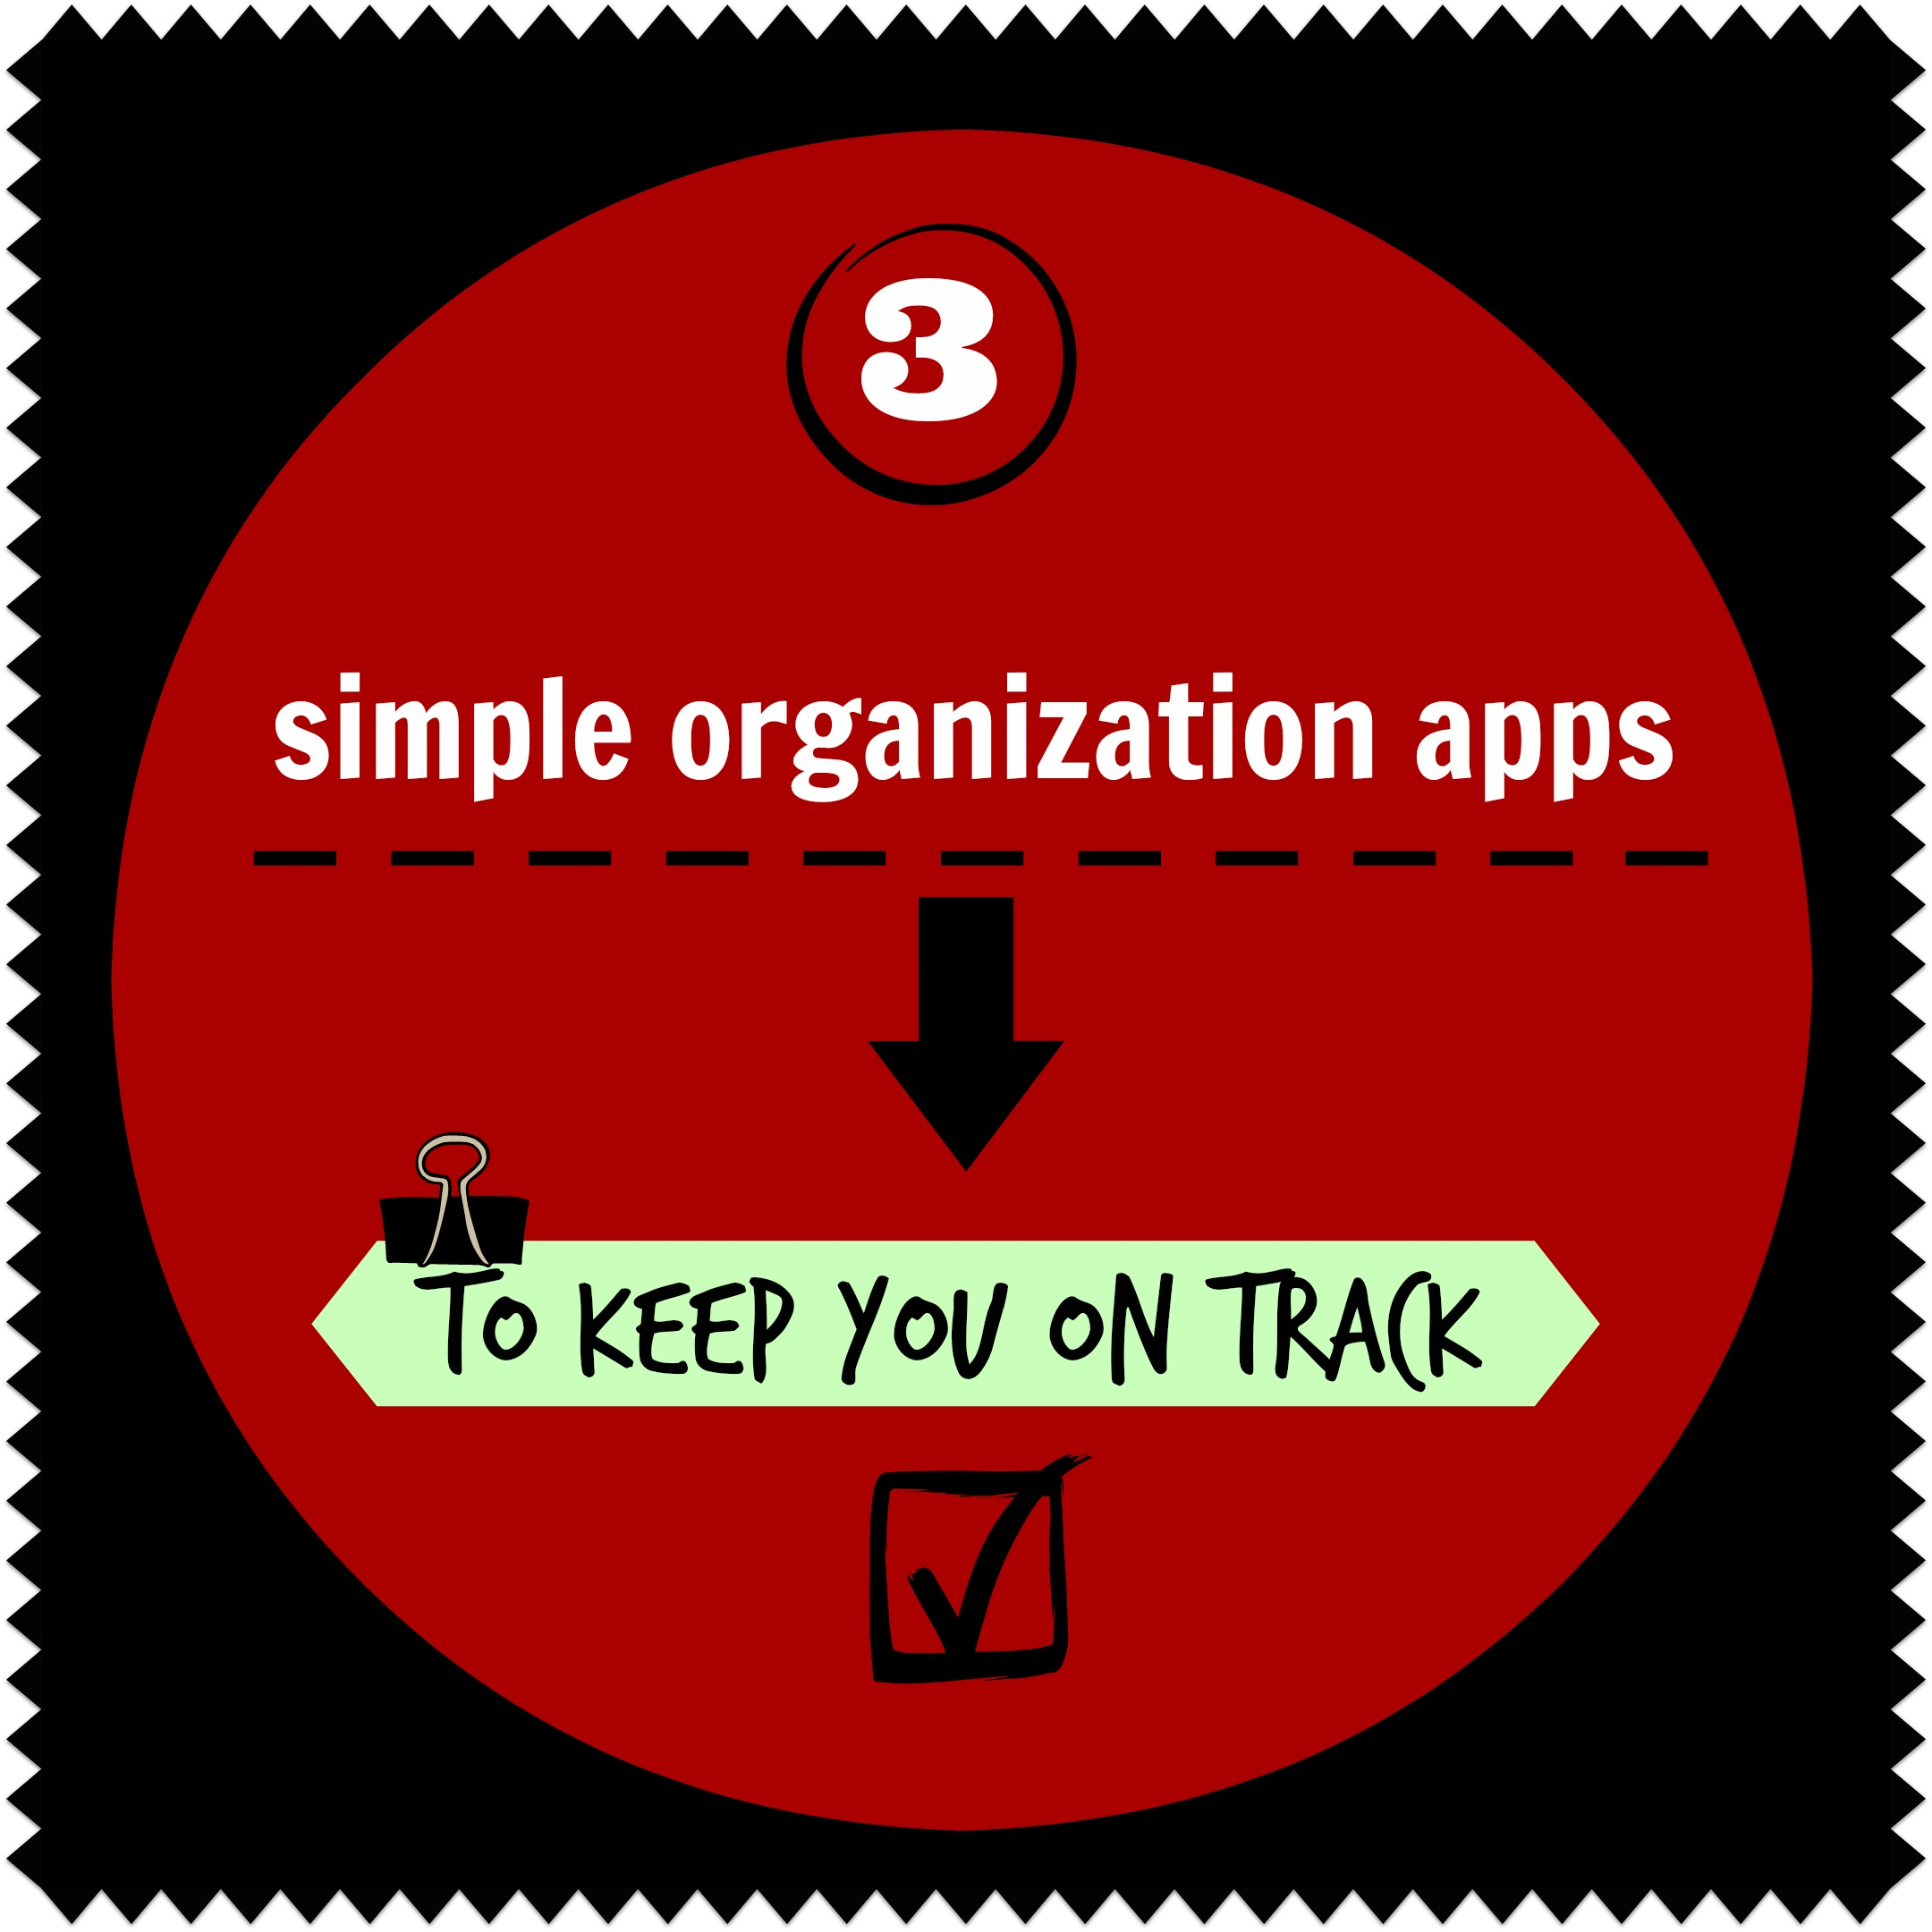 The Three Top Organization Apps You Need! - Life In